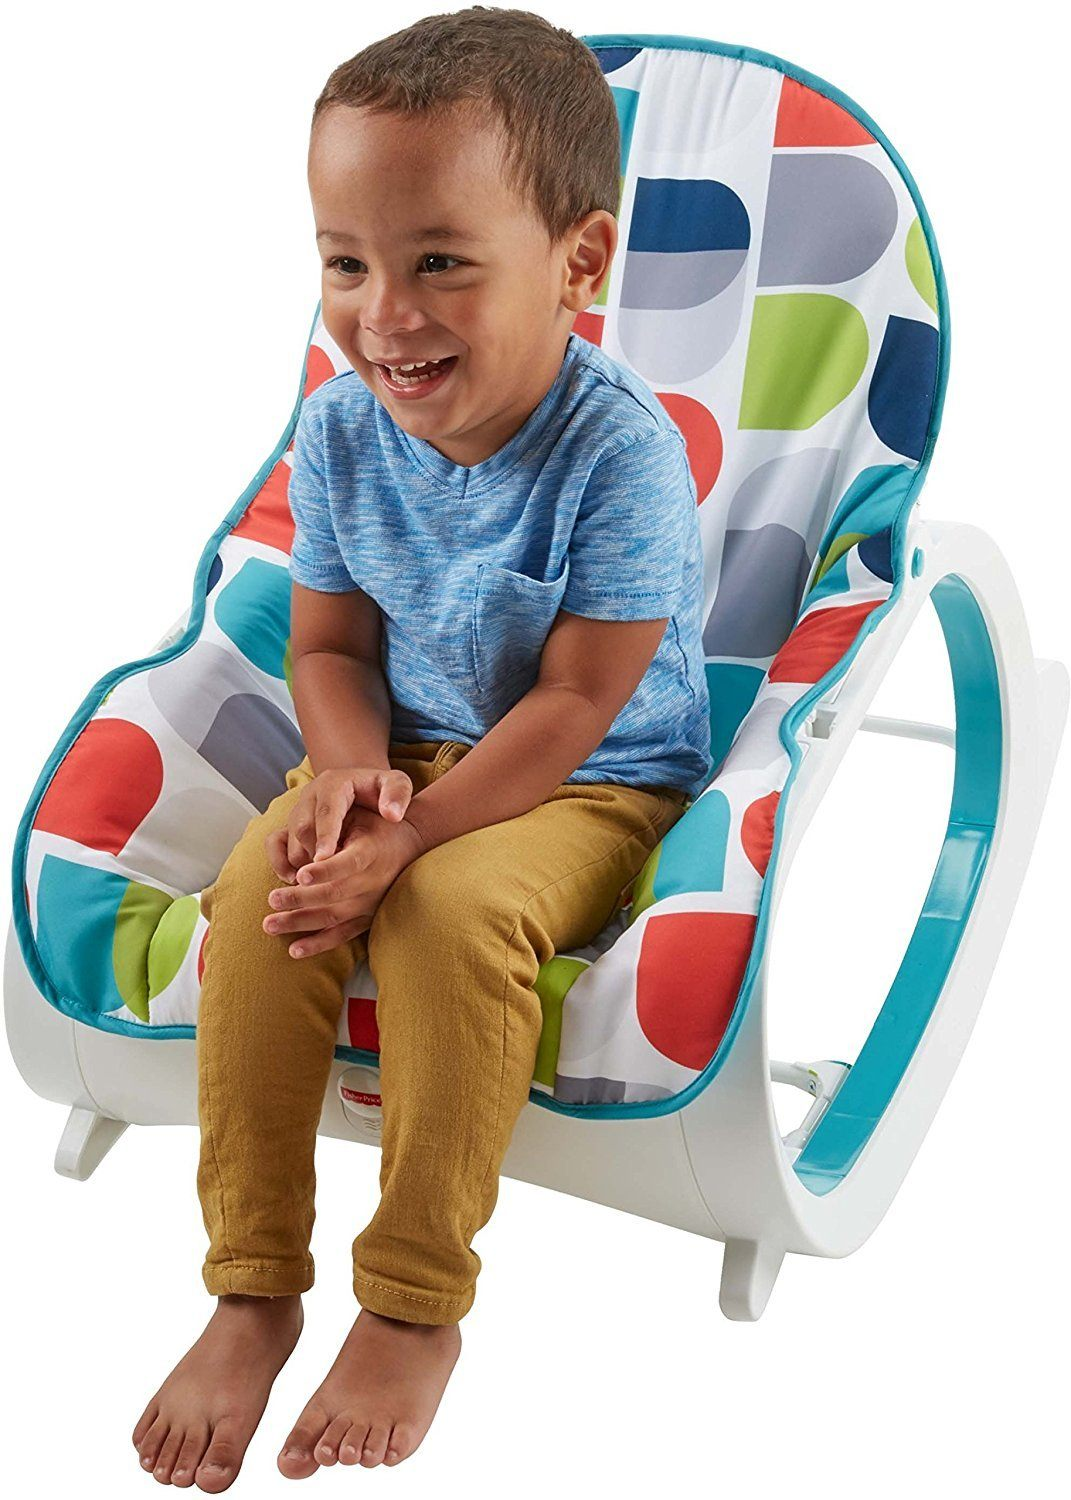 Best Baby Swing On The Market After Testing Several Baby